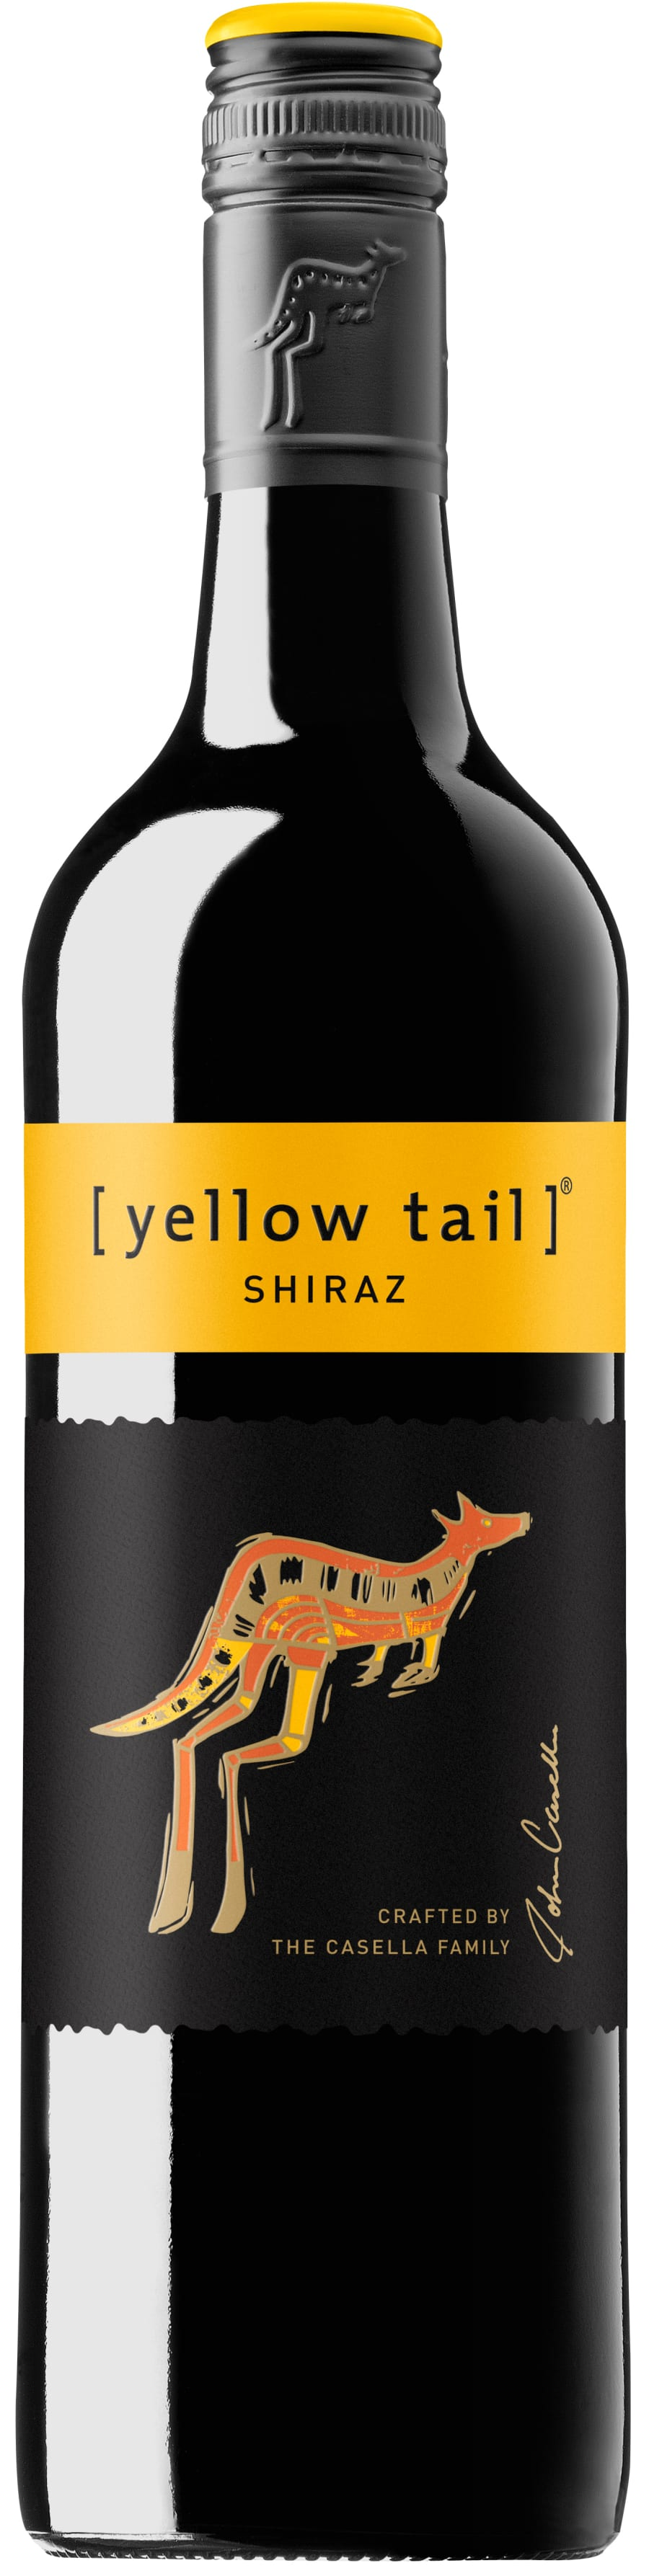 yellow-tail-shiraz-2017